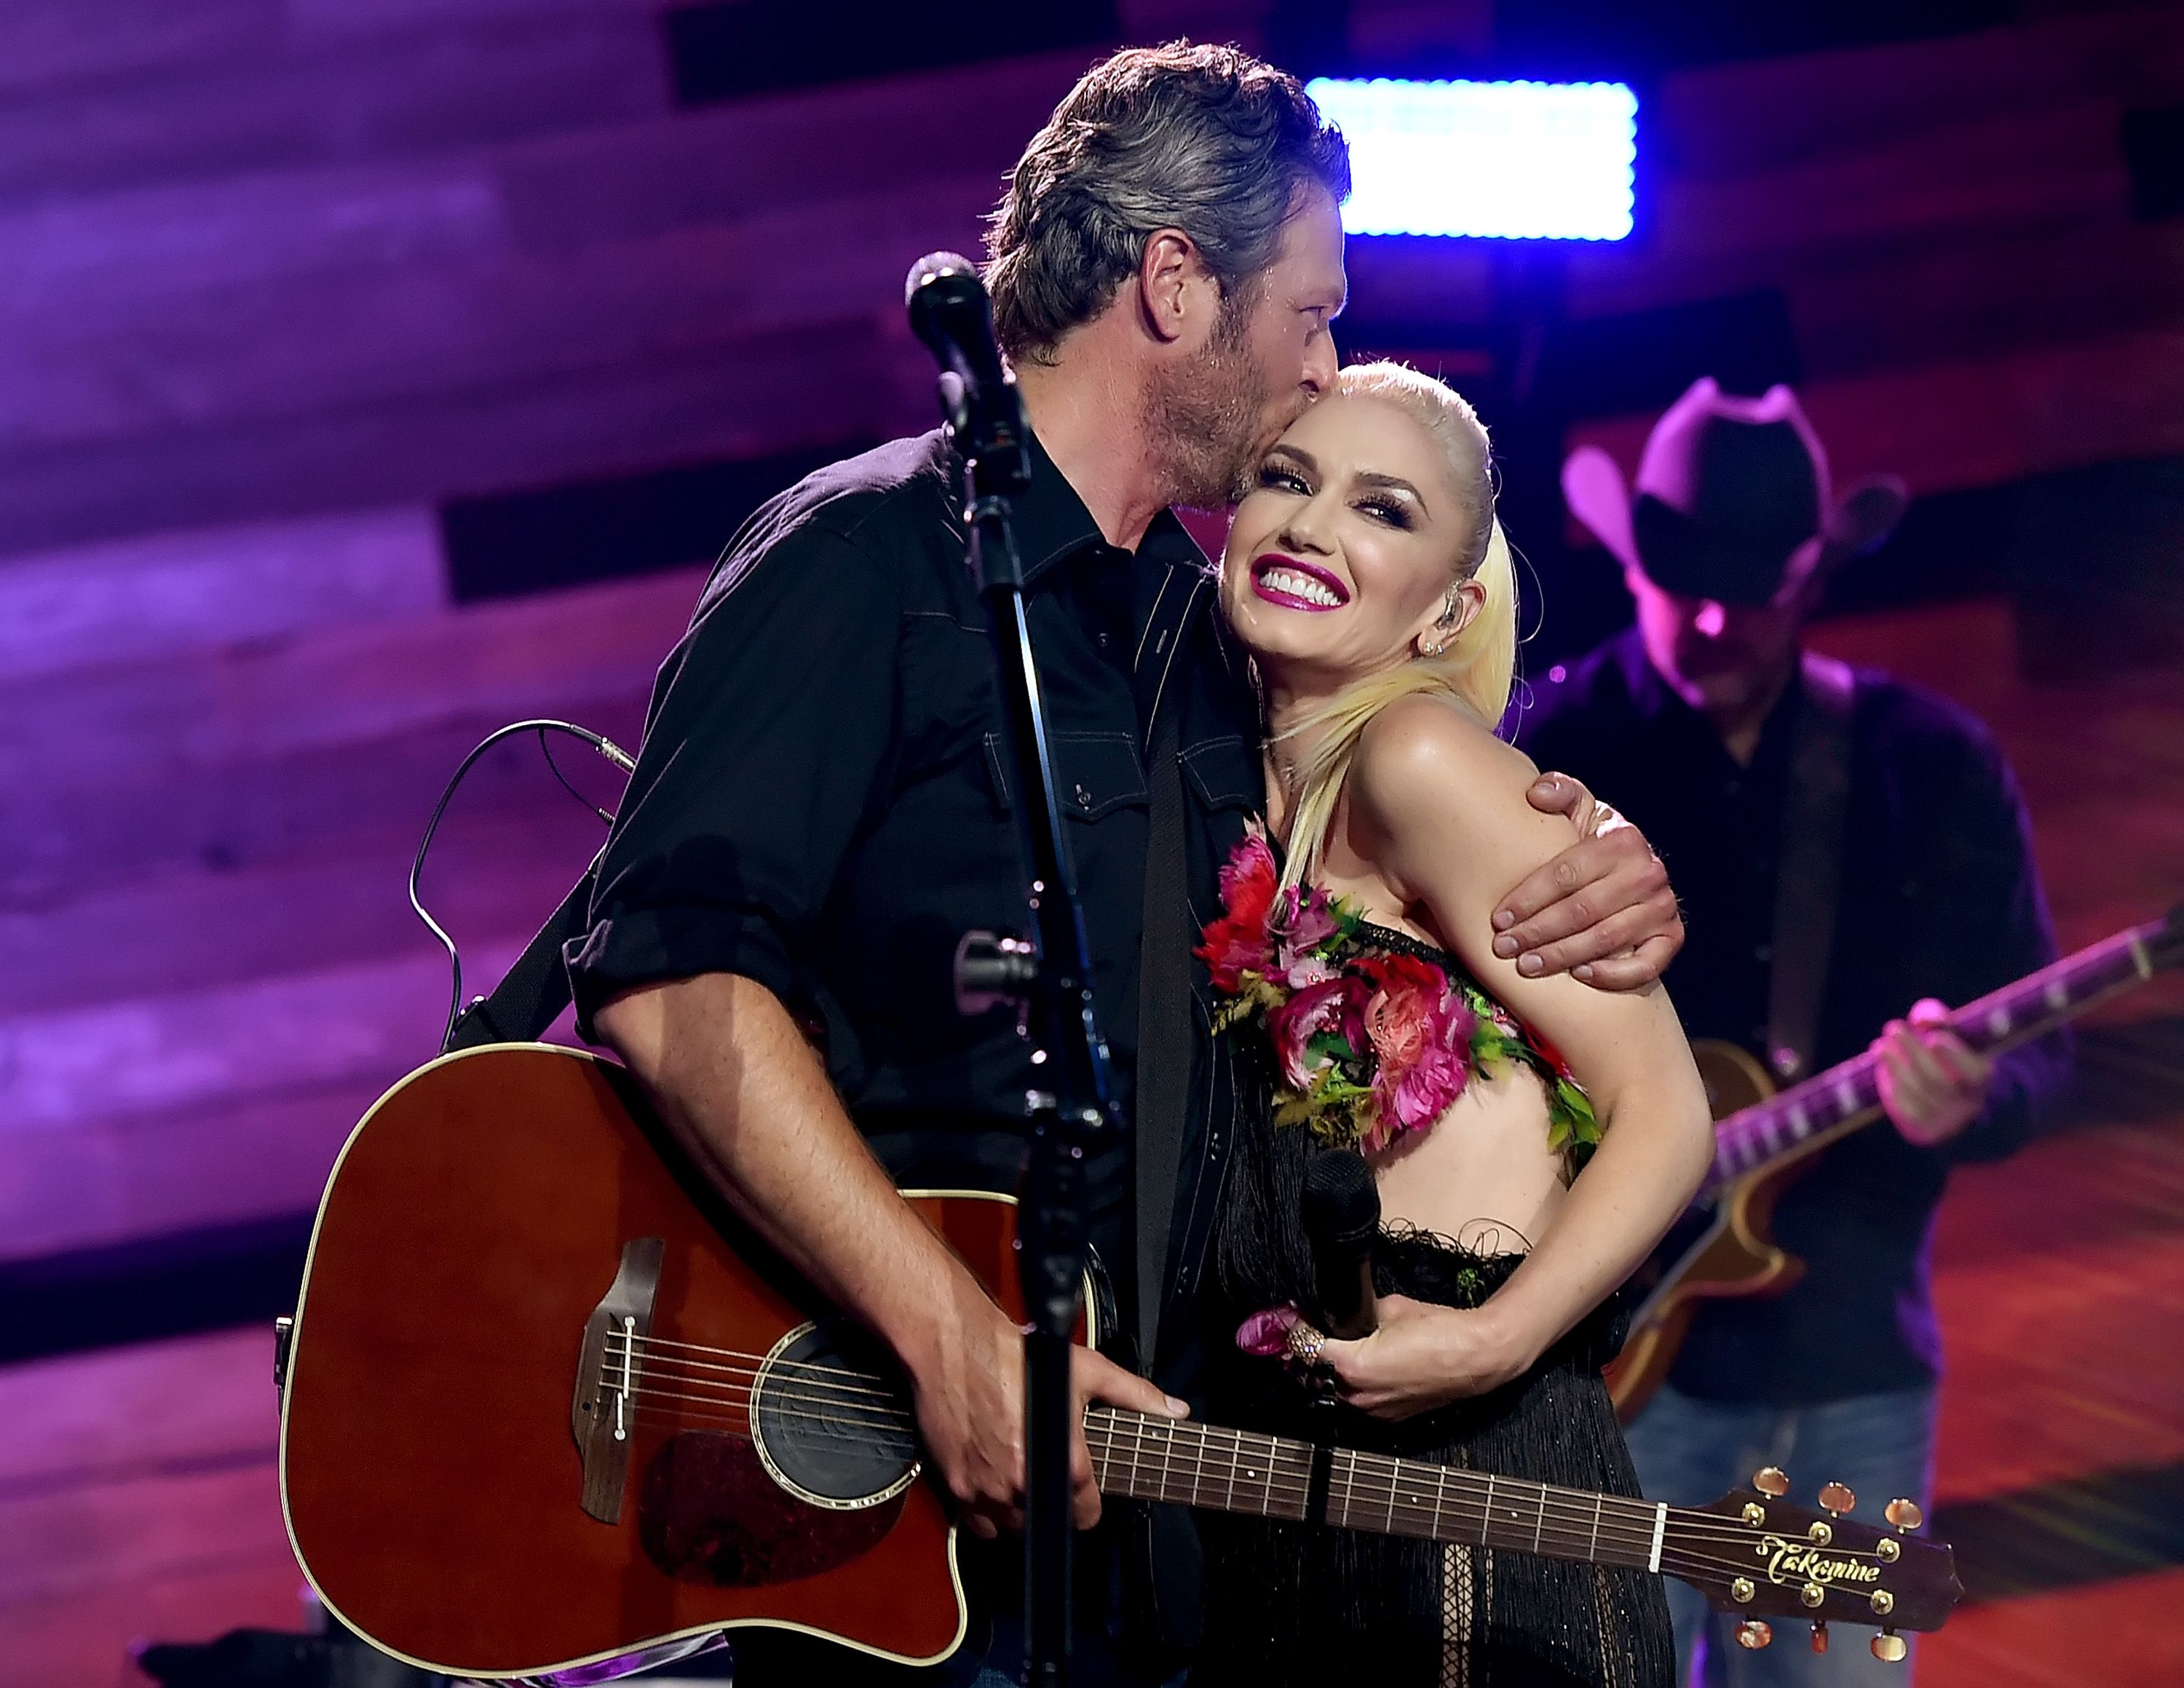 Blake Shelton and Gwen Stefani perform on the Honda Stage at the iHeartRadio Theater on May 9, 2016   Photo: Getty Images